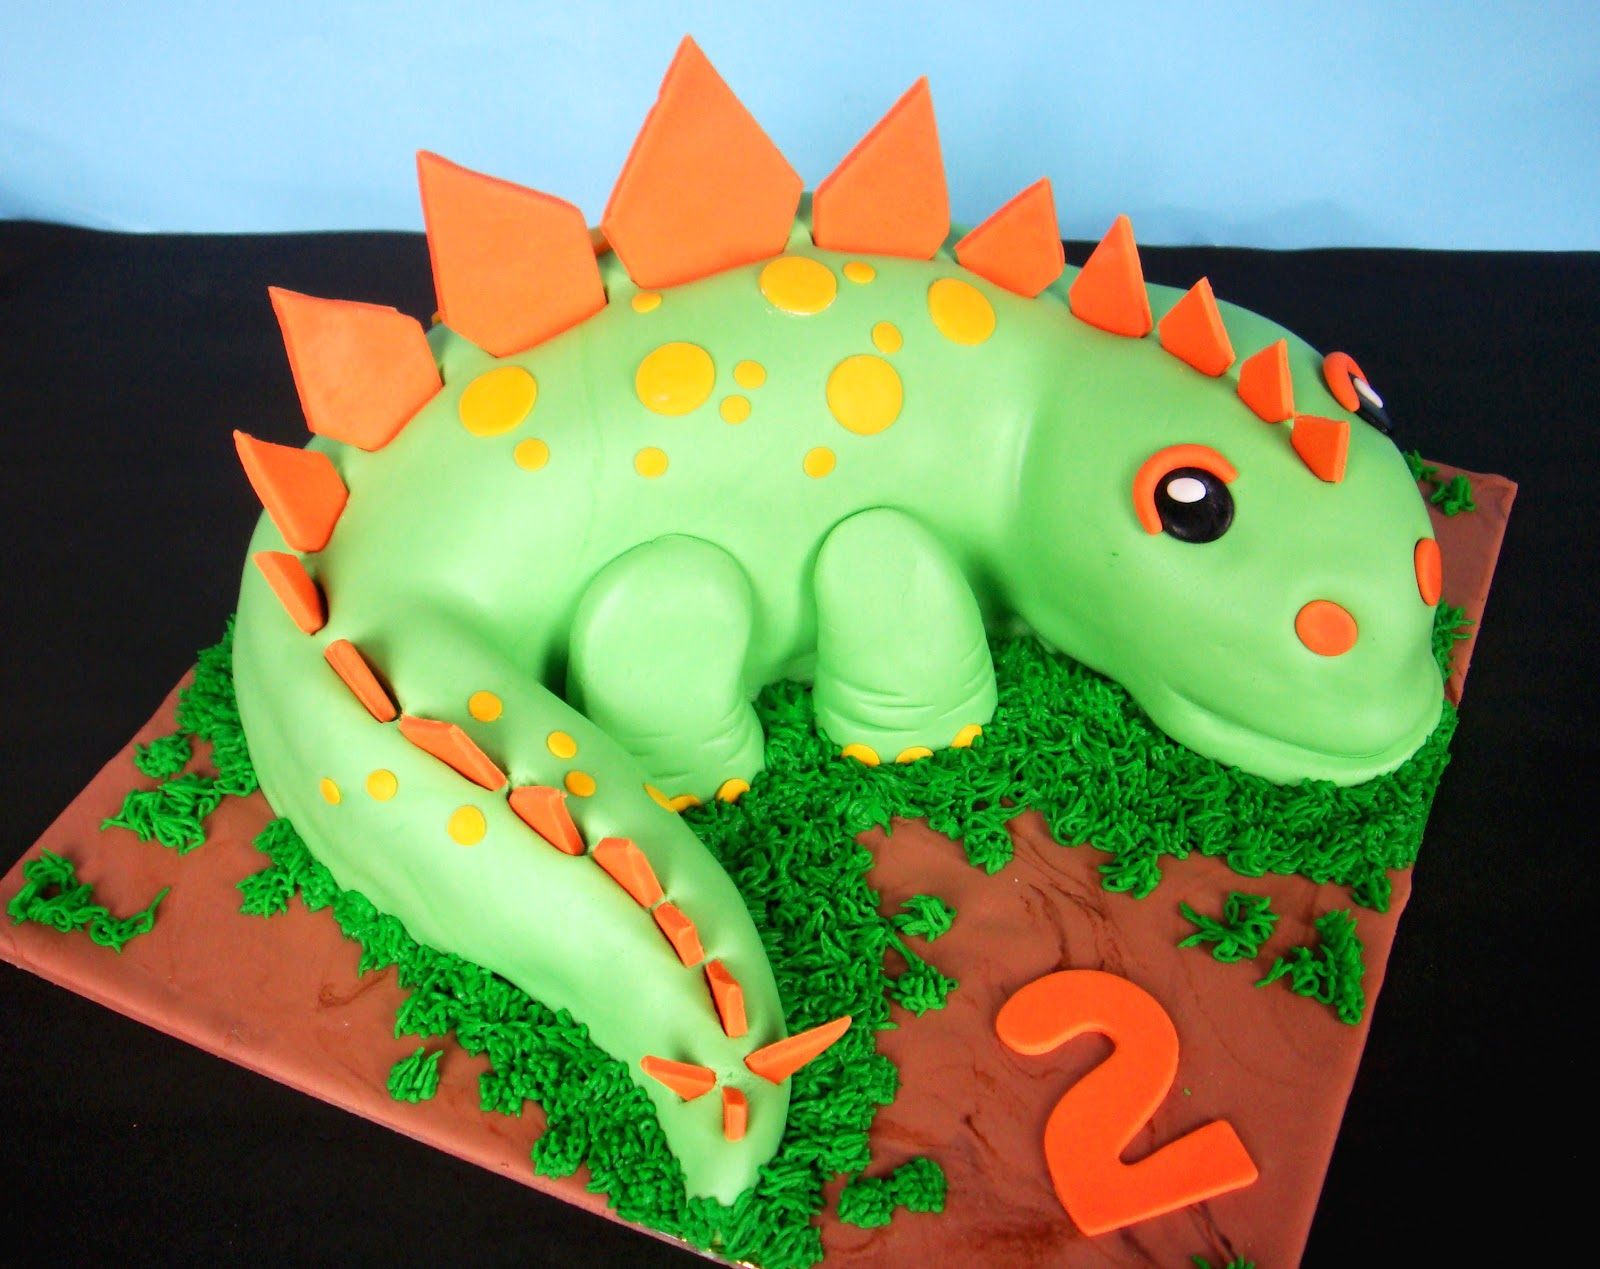 Sensational 12 Dinosaur Birthday Cupcakes Photo Dinosaur Birthday Cake Ideas Funny Birthday Cards Online Alyptdamsfinfo